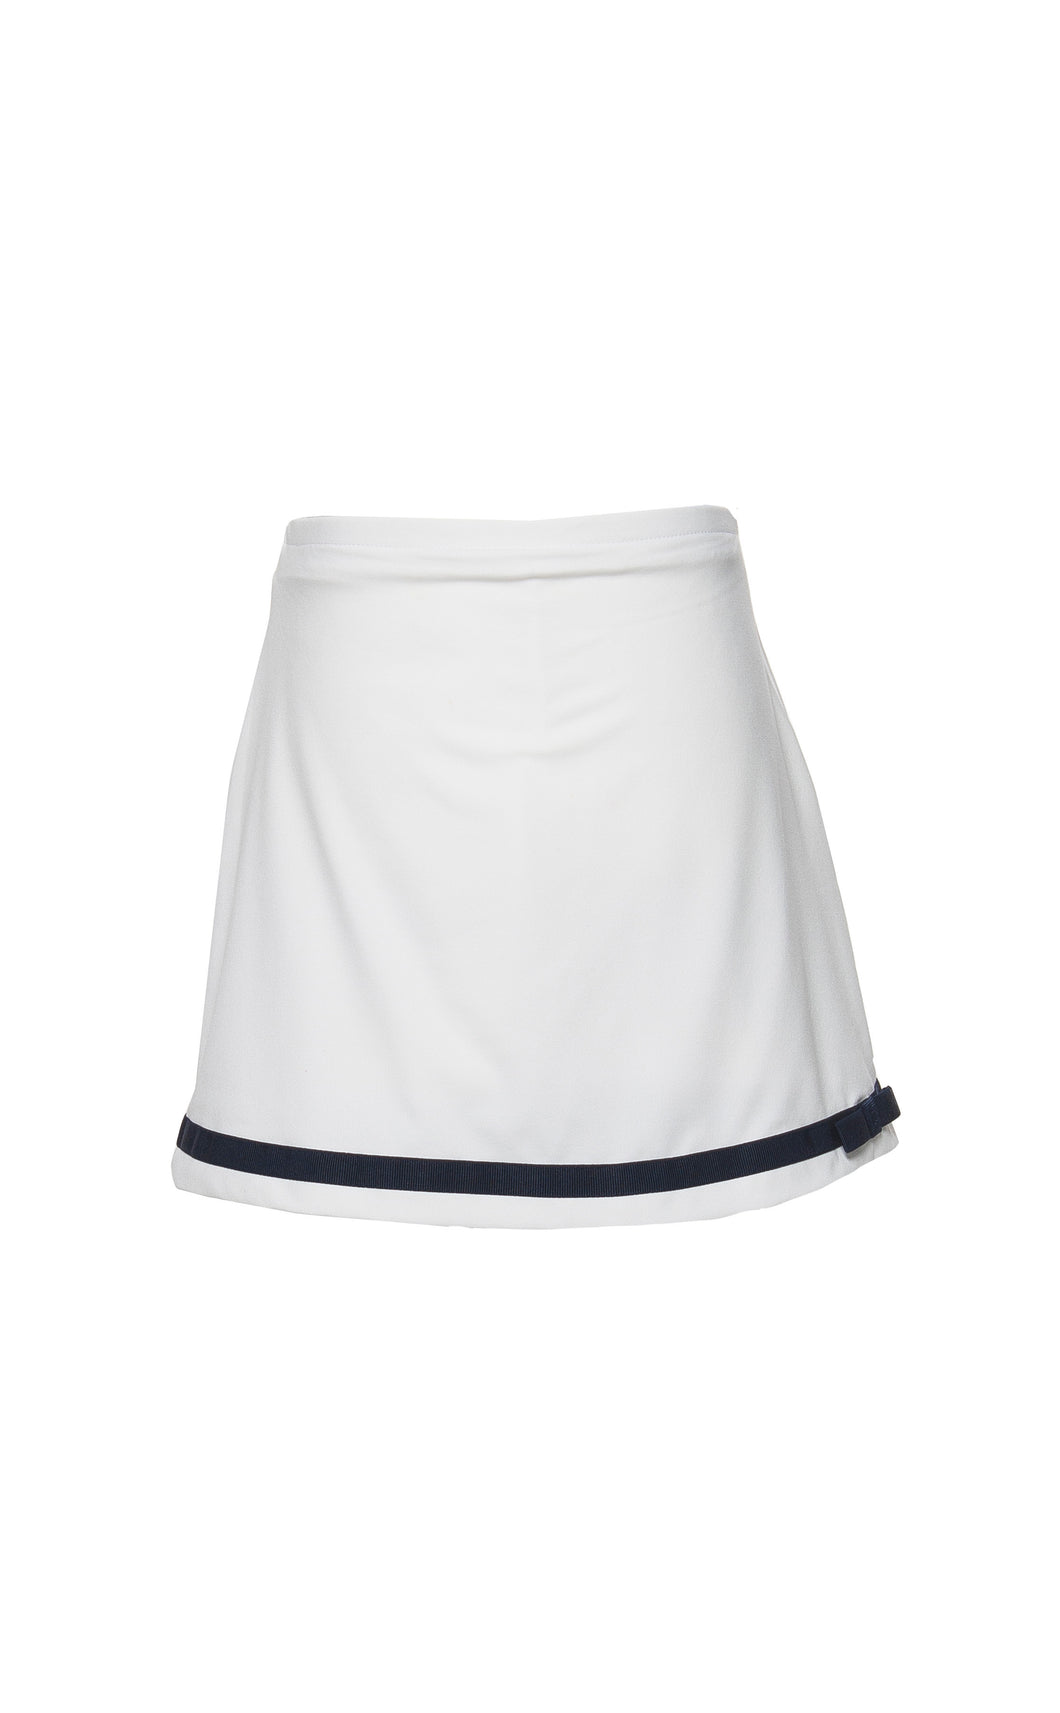 Girl's White Tennis Skort With Navy Trim